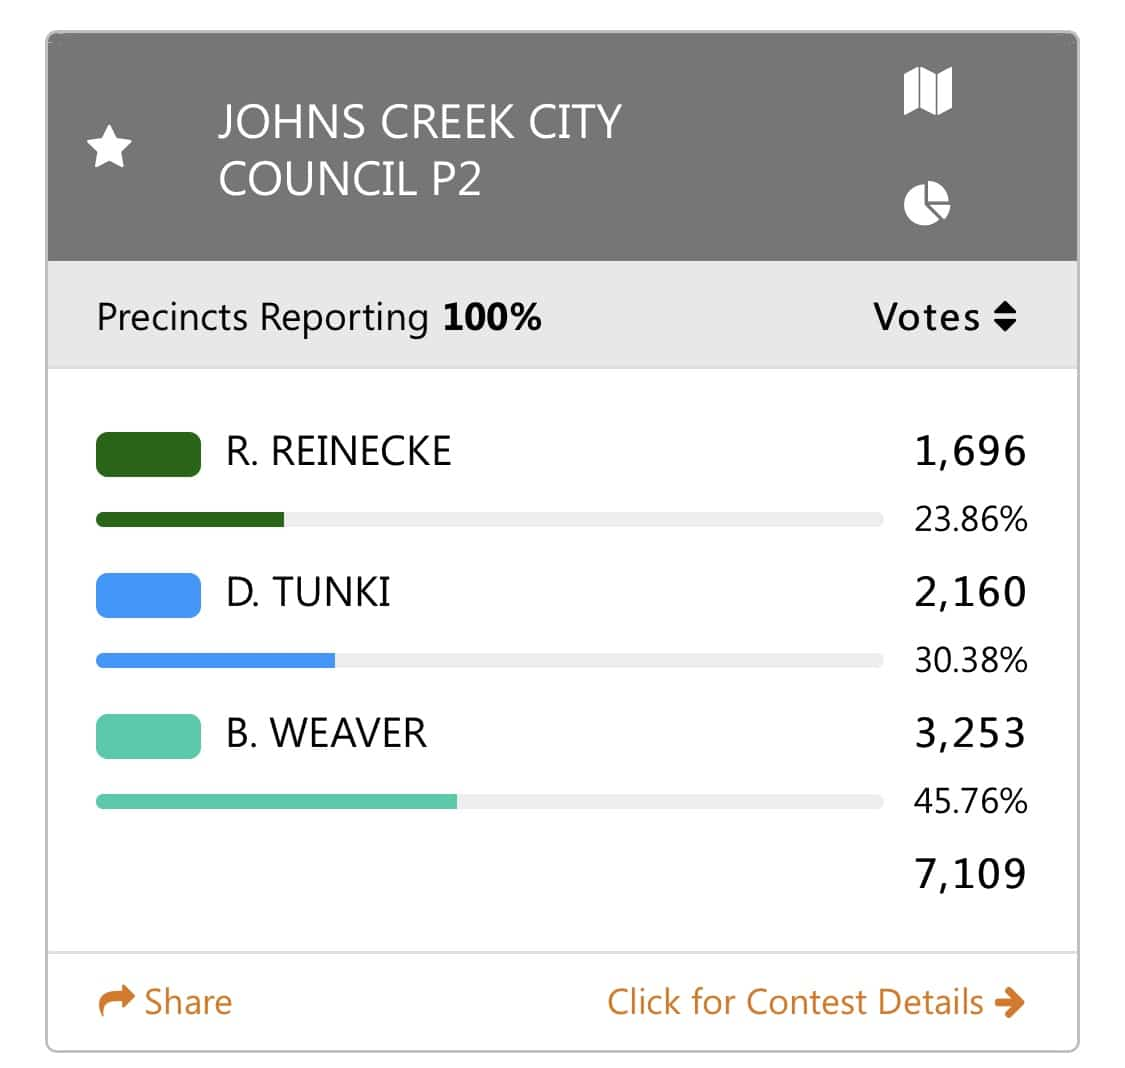 Johns Creek City Council Post 2 Results